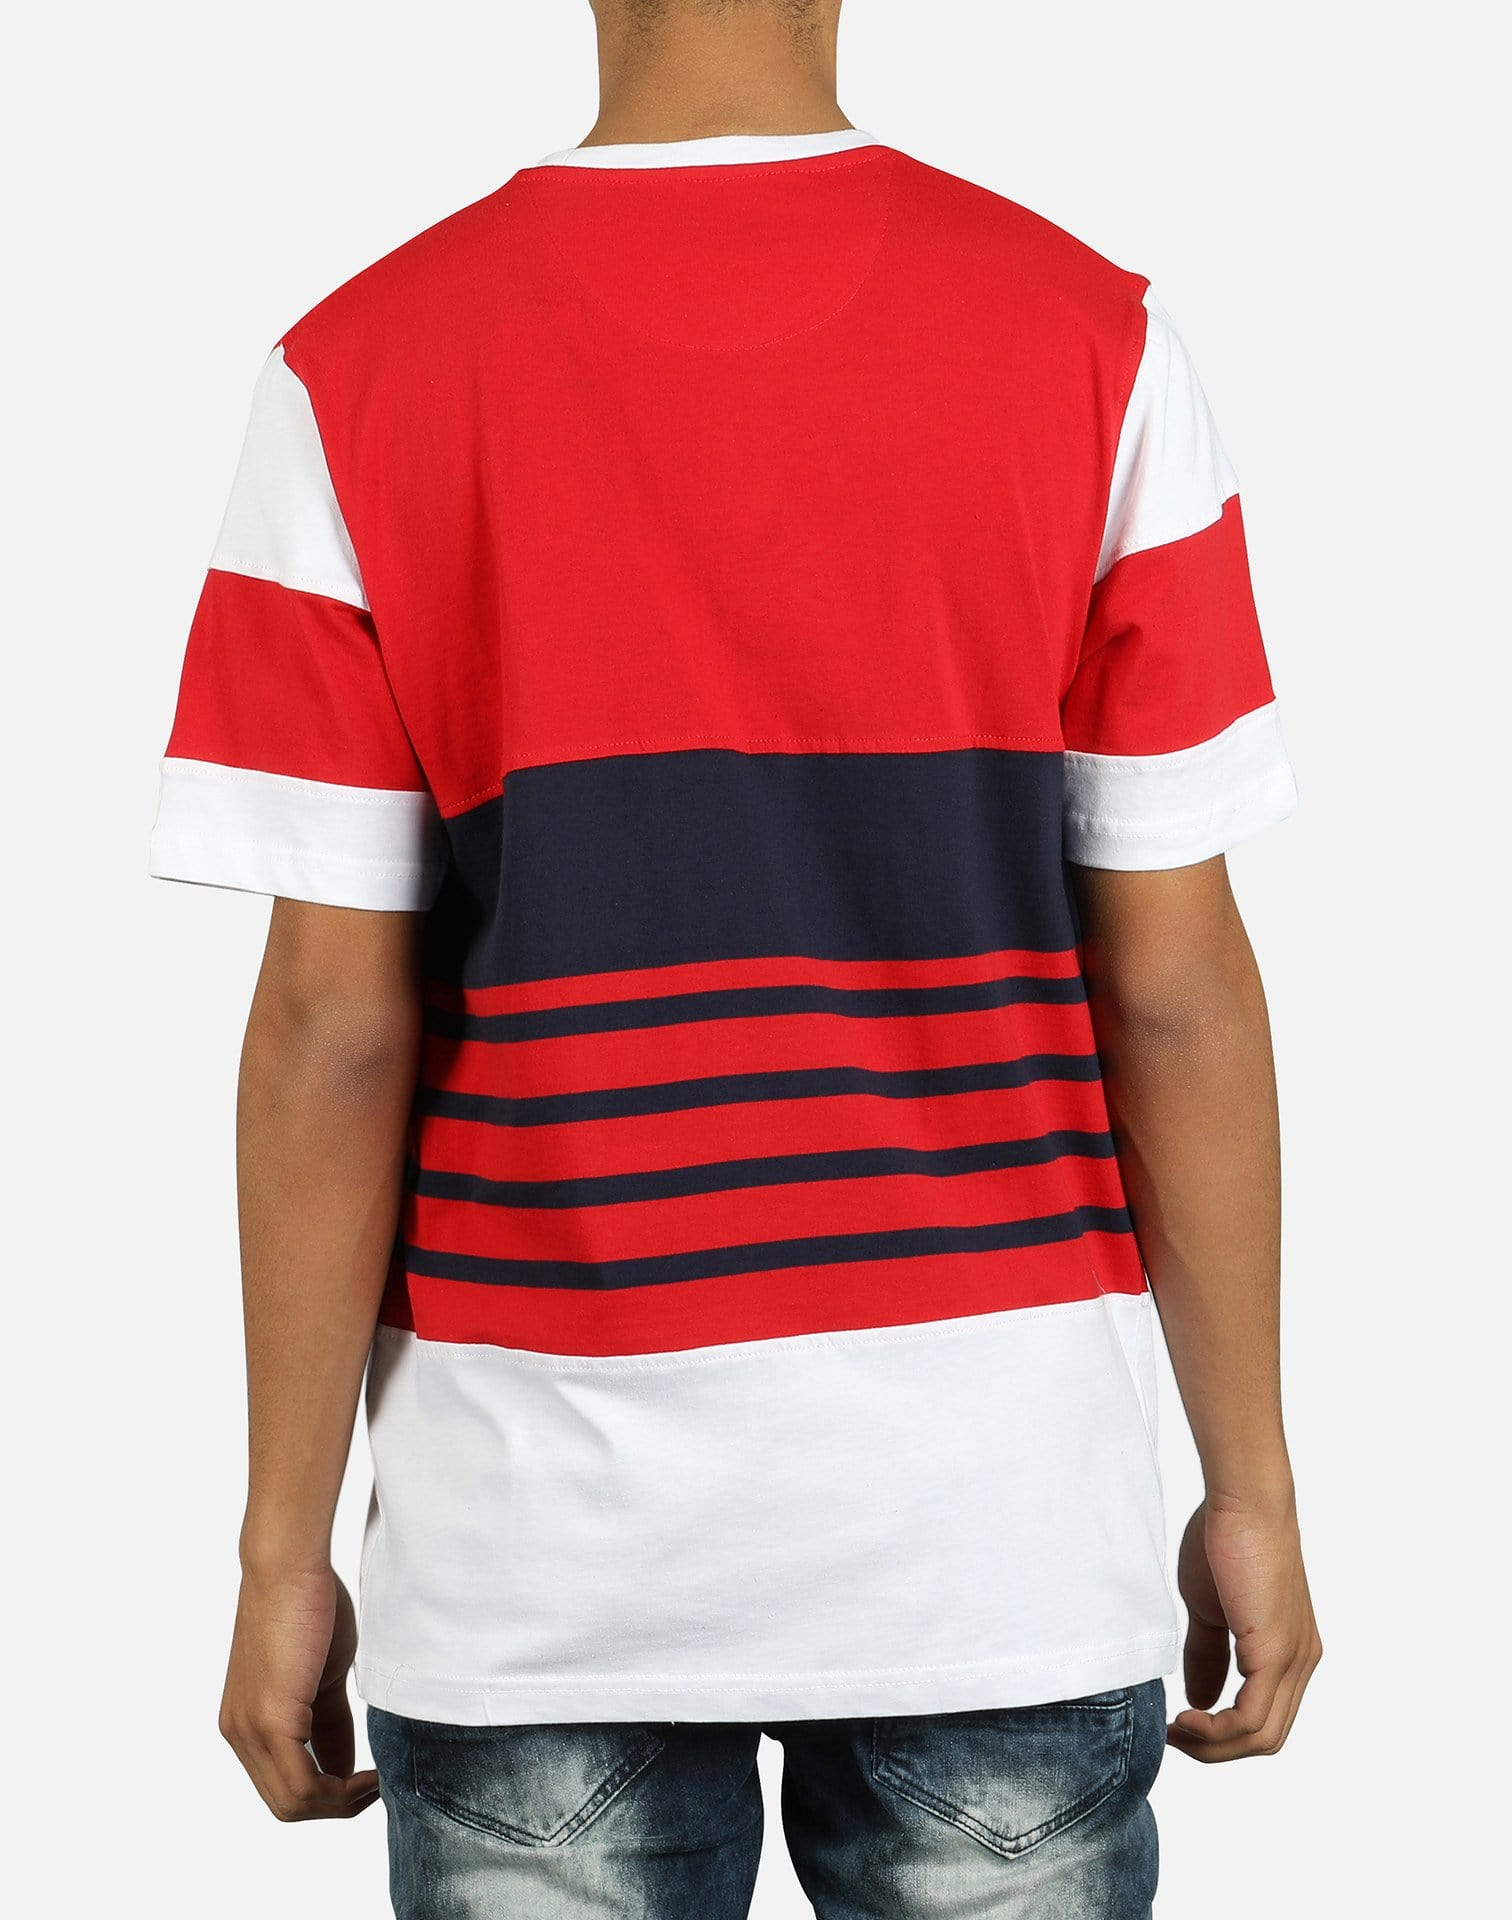 Born Fly Men's Rhea Striped Tee